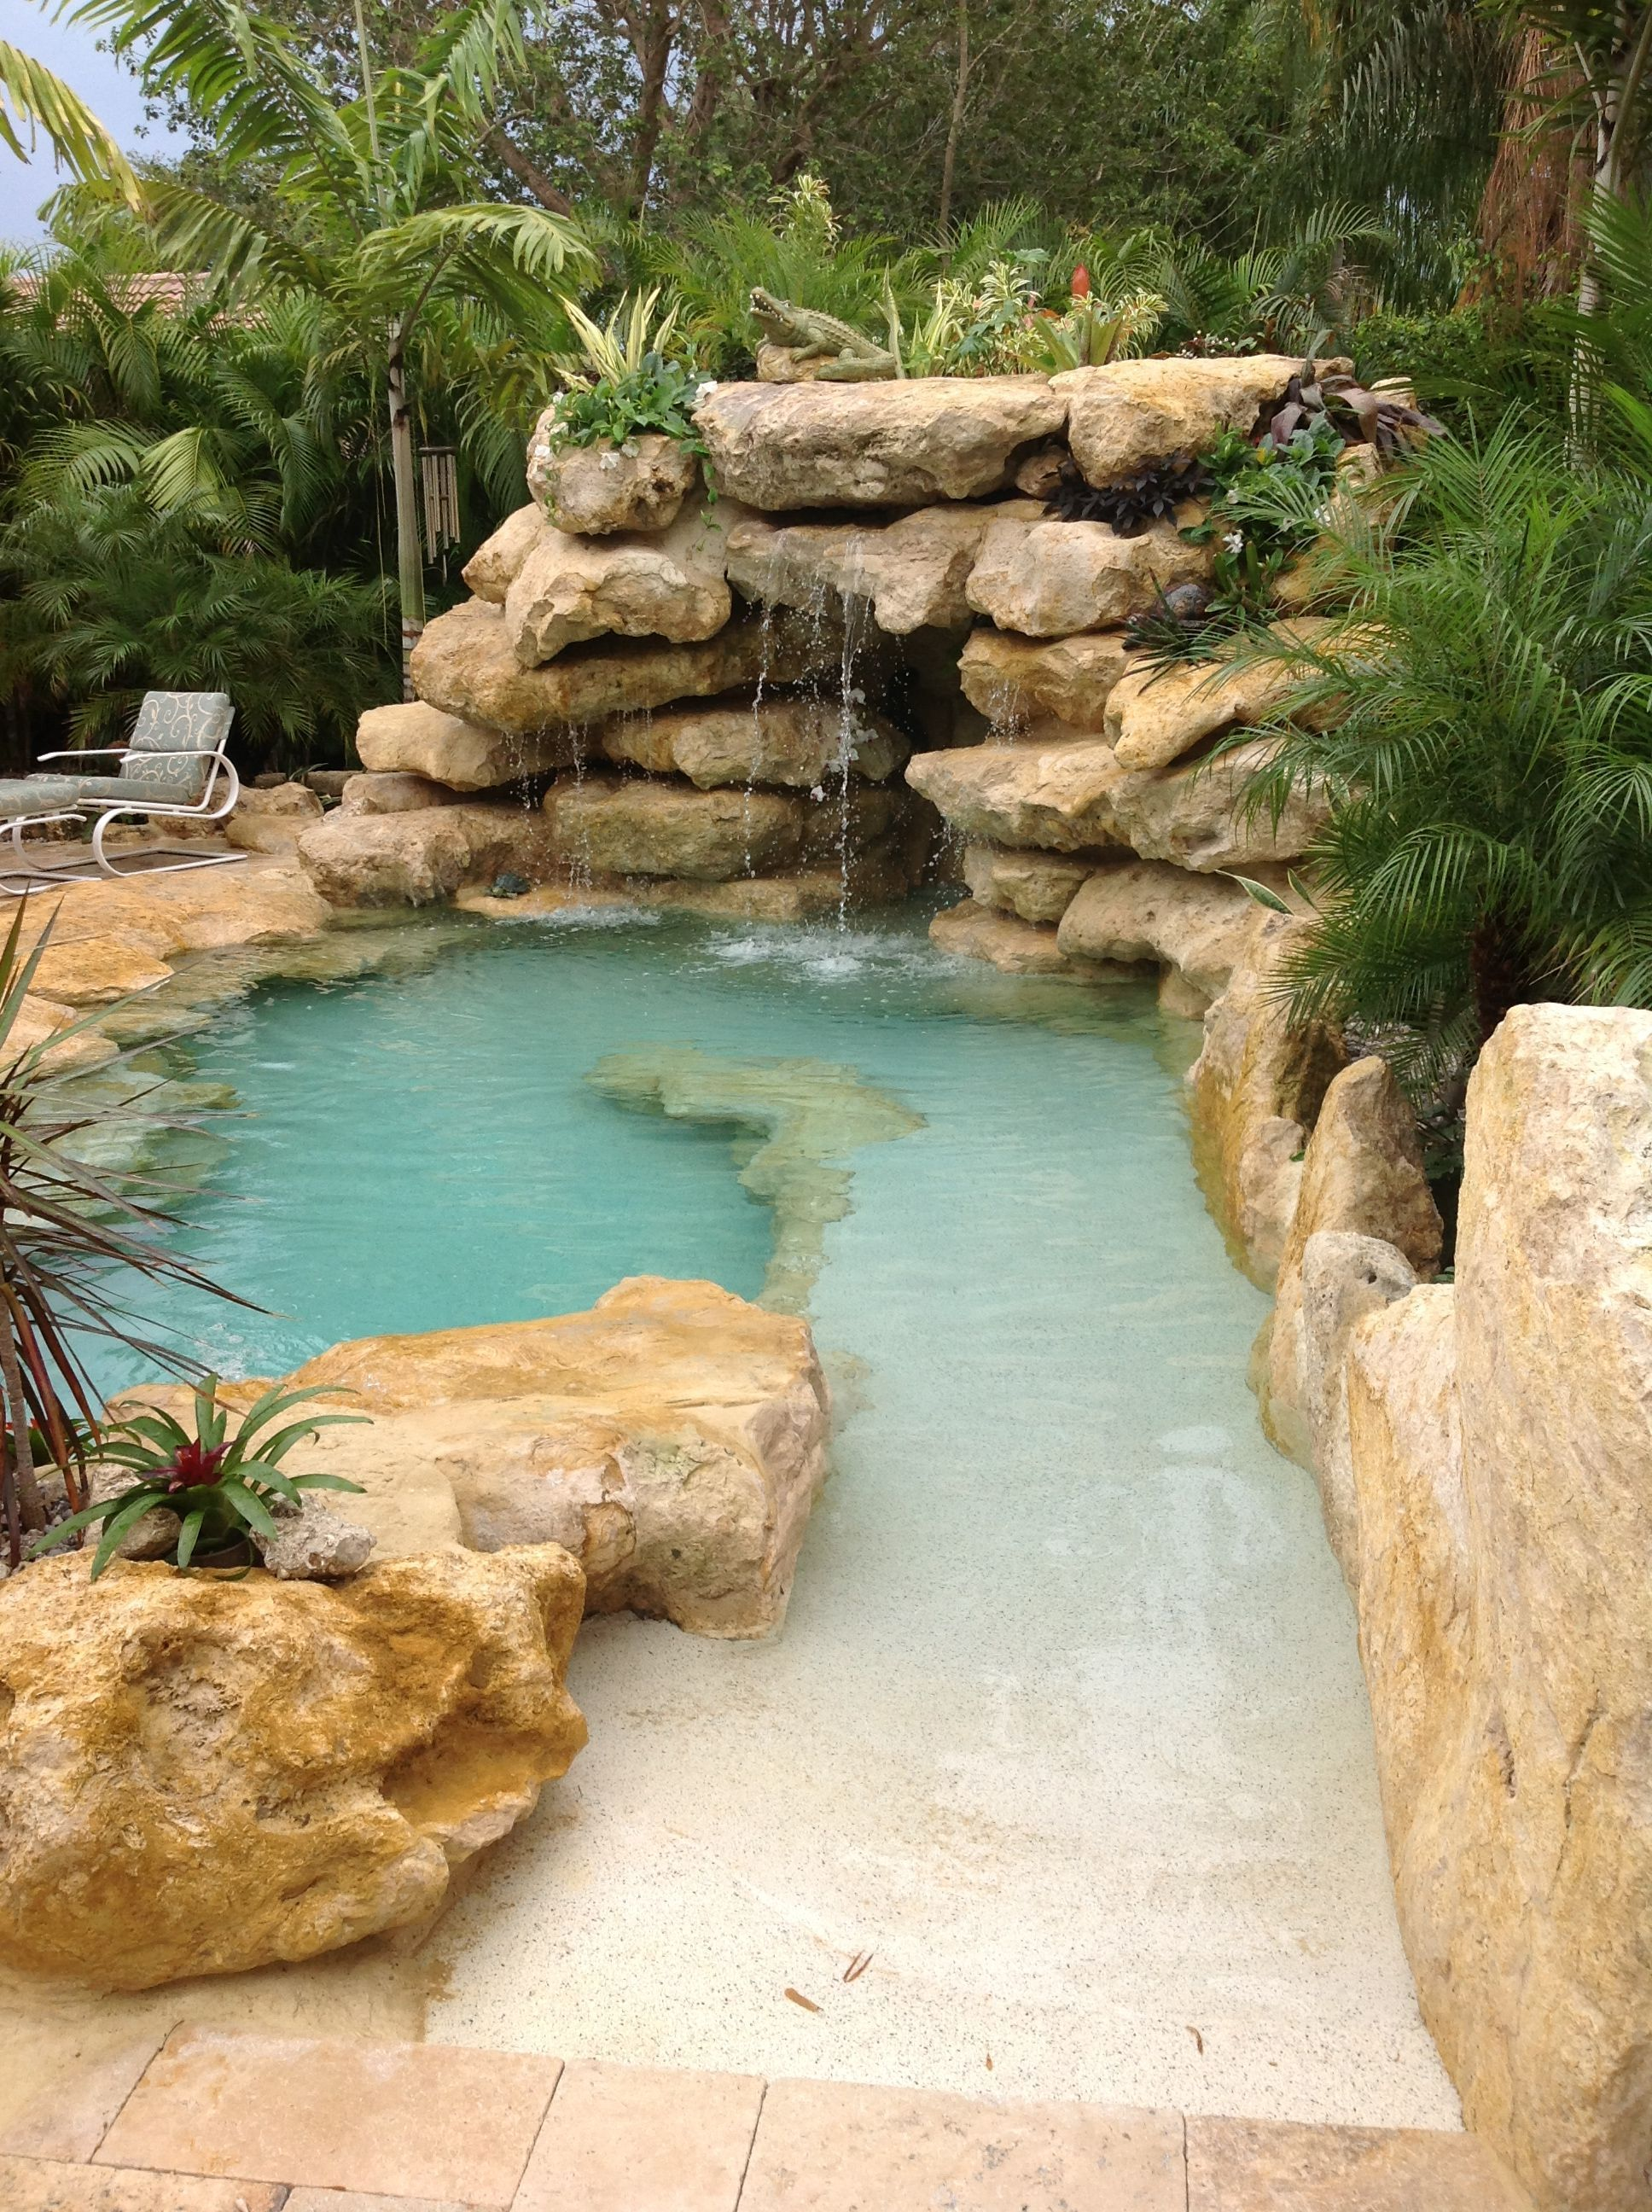 Tropical Entrance Natural Latest Stone Style If You Want To Relax Outside In The S In 2020 Tropical Pool Landscaping Pool Landscaping Backyard Pool Designs